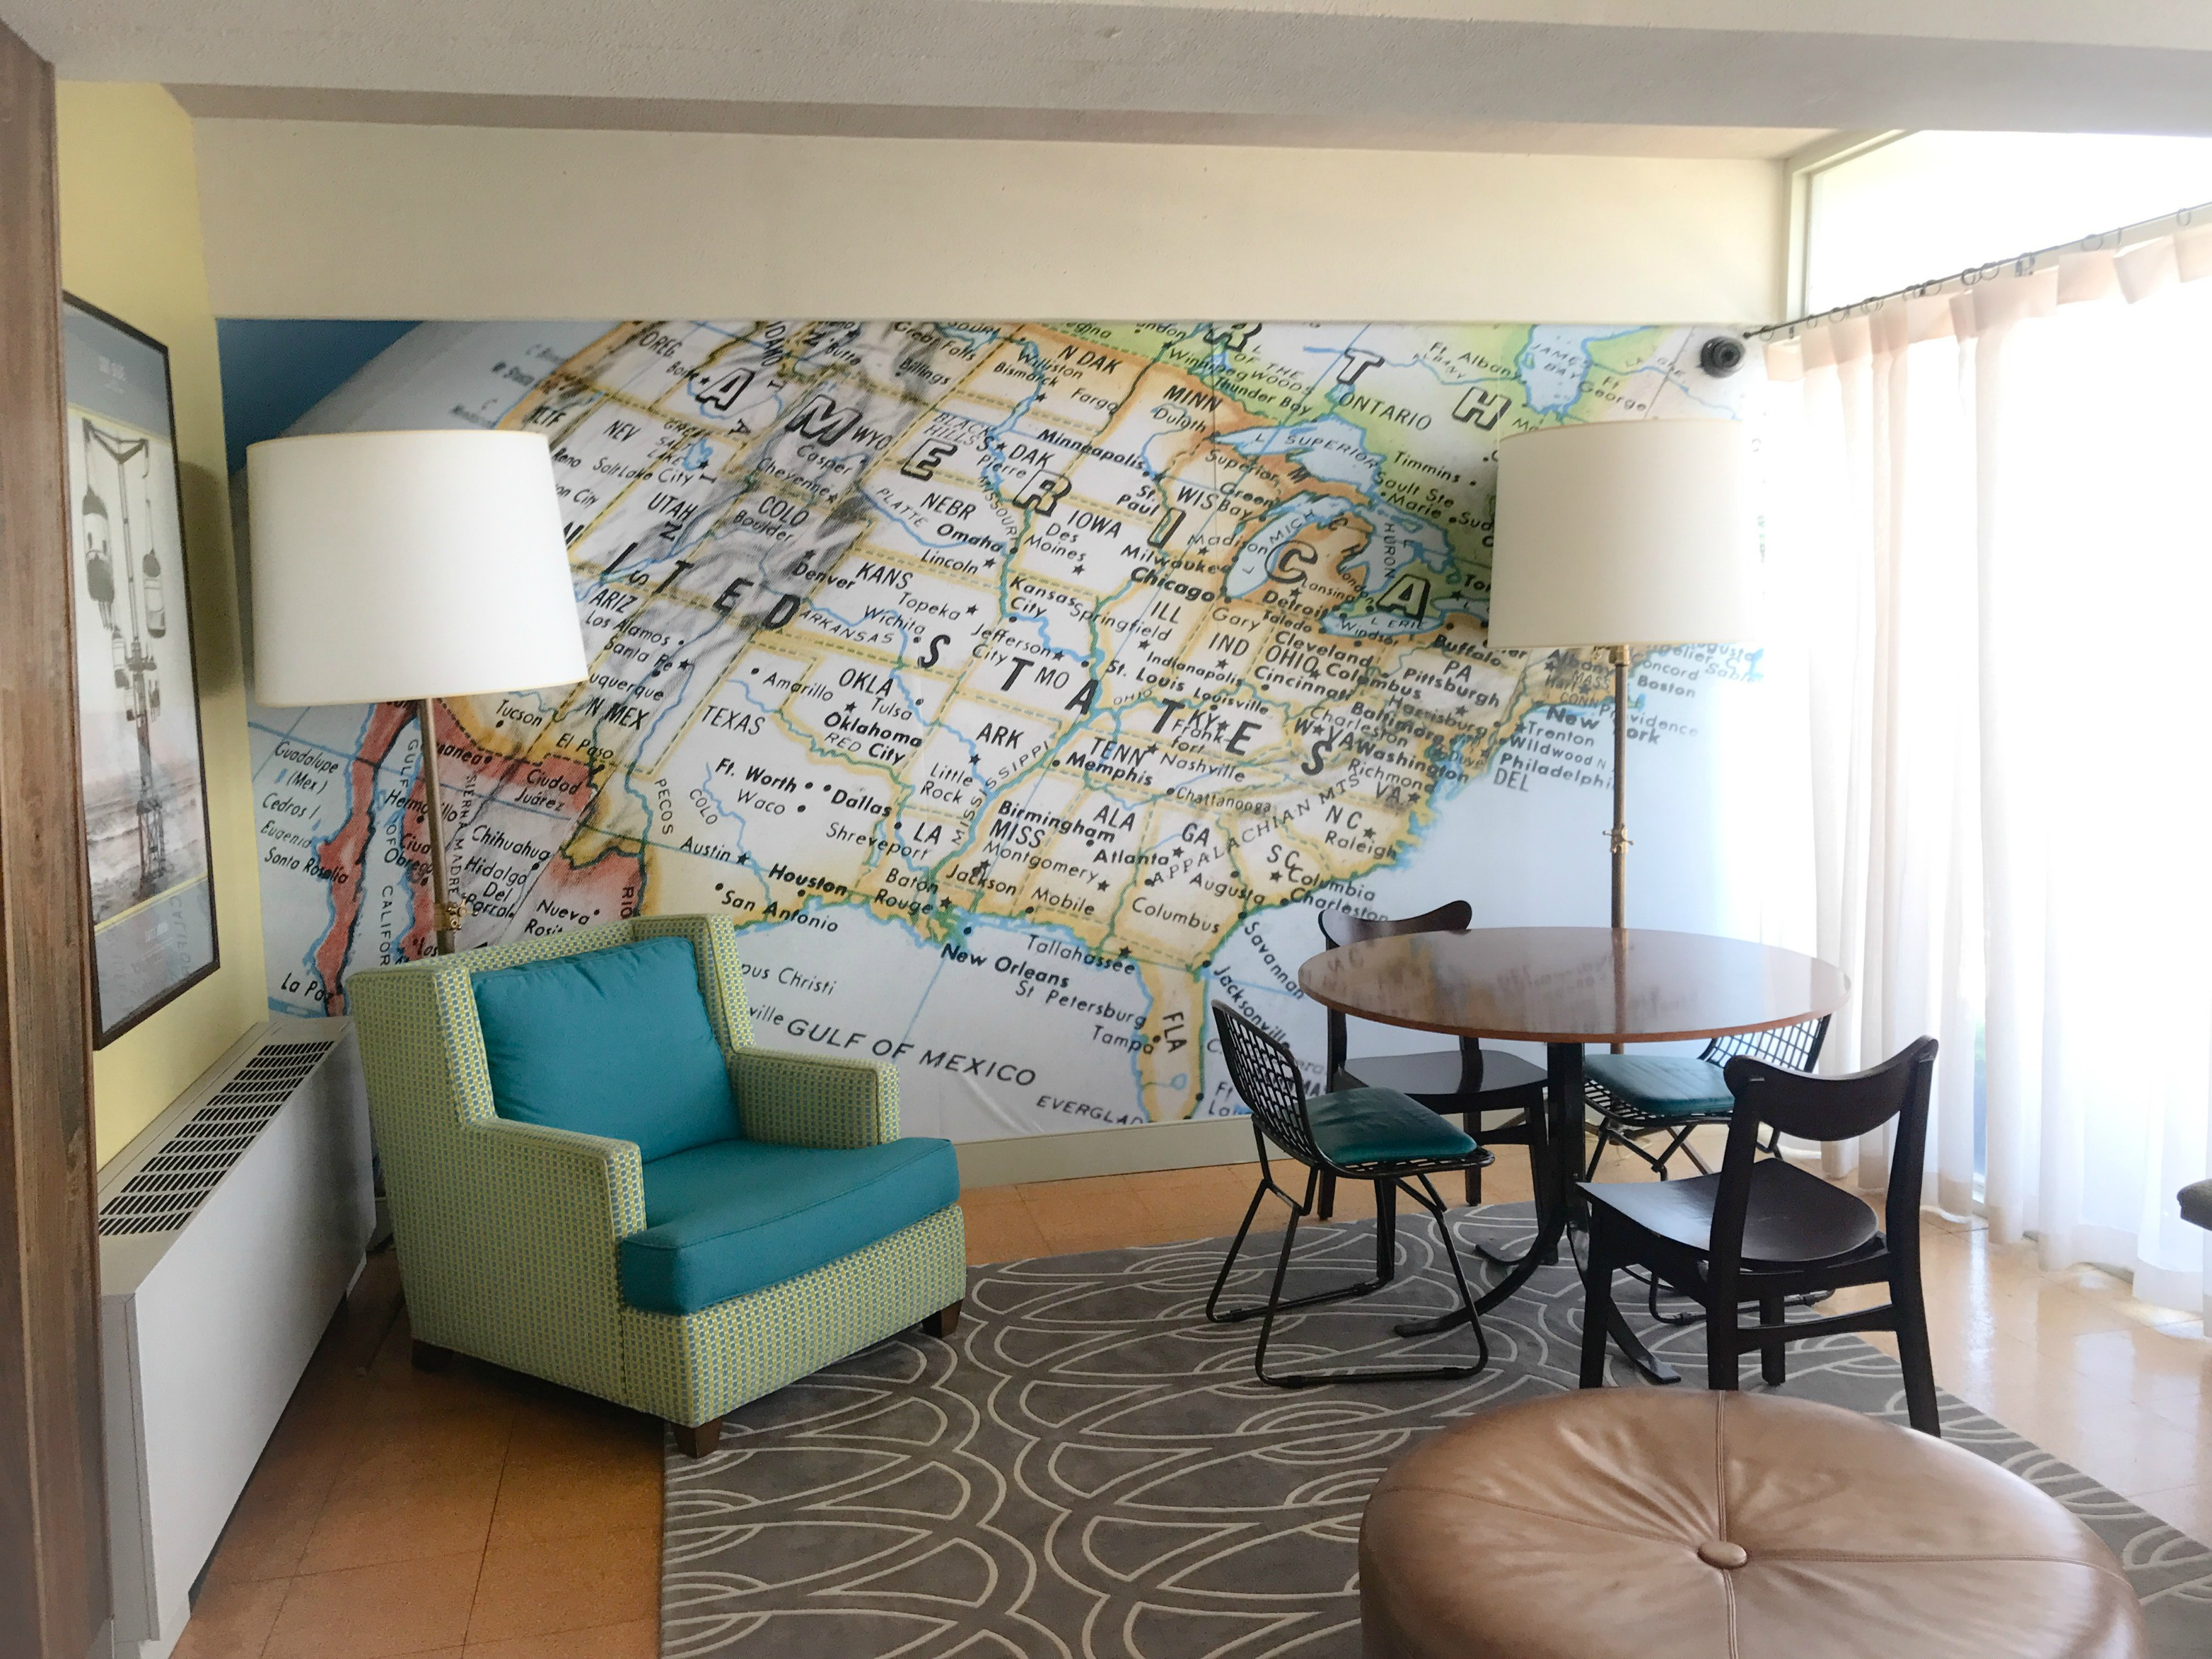 5 Reasons the Pan American Hotel in Wildwood, NJ is Perfect for Families